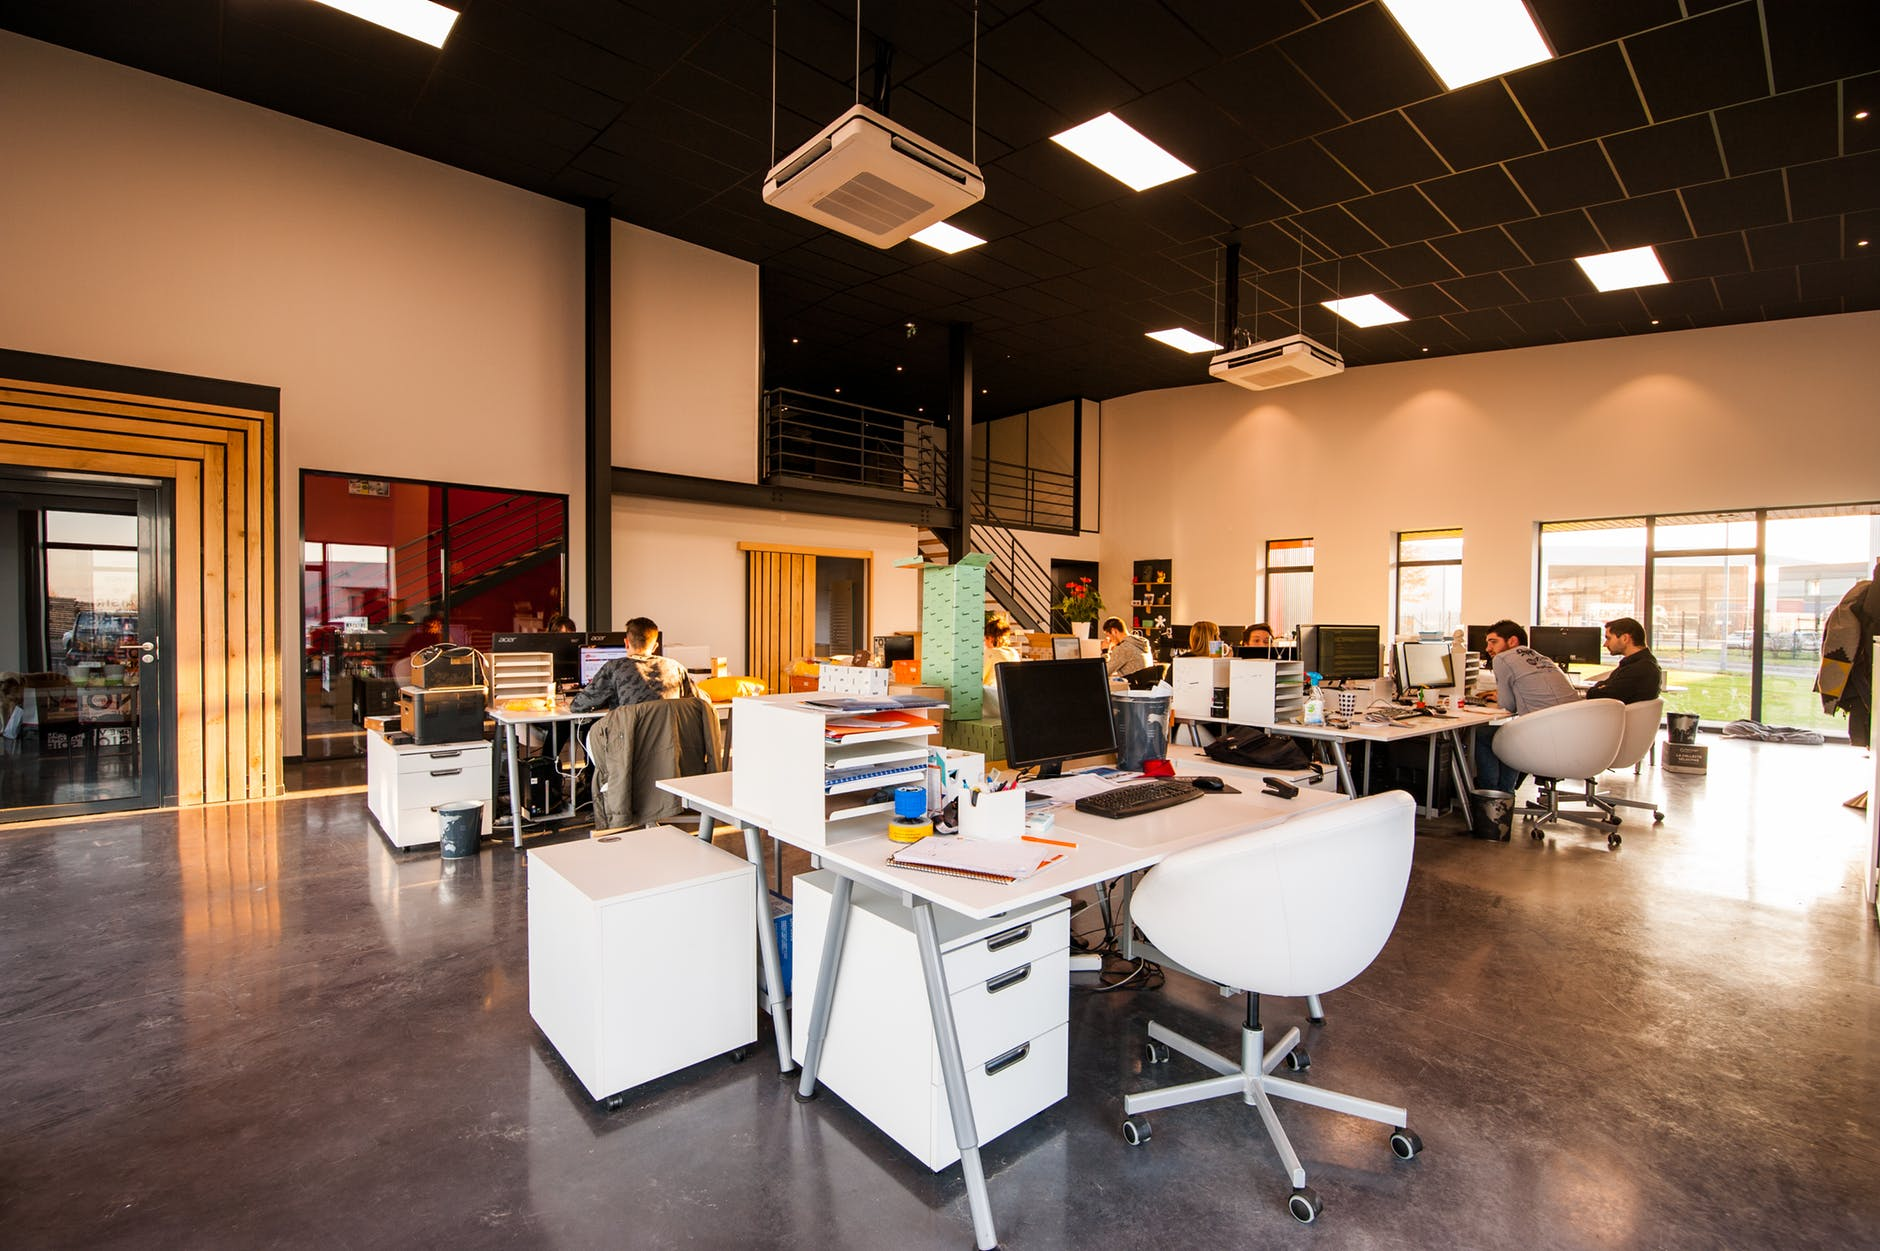 open office desks and people working